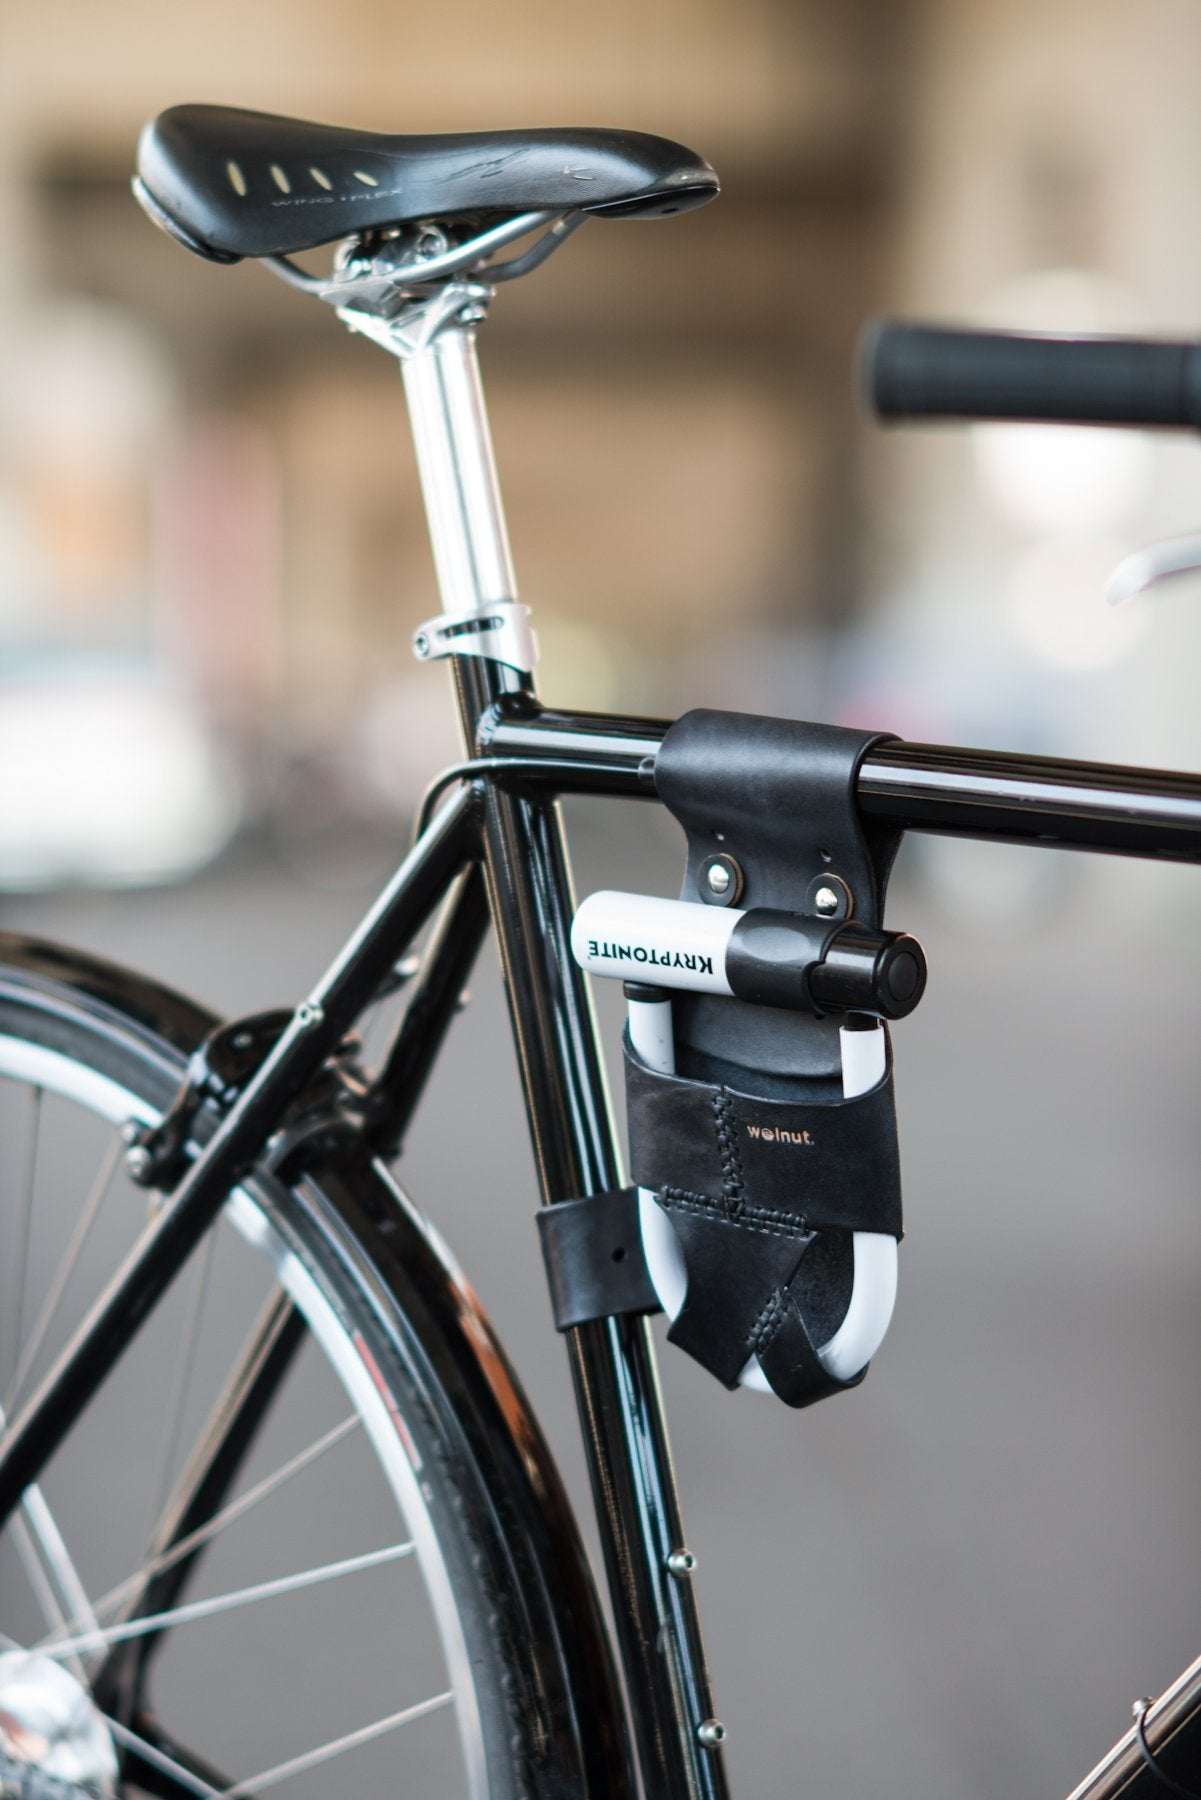 Cycle combination Lock with bike seatpost and bicycle frame mount